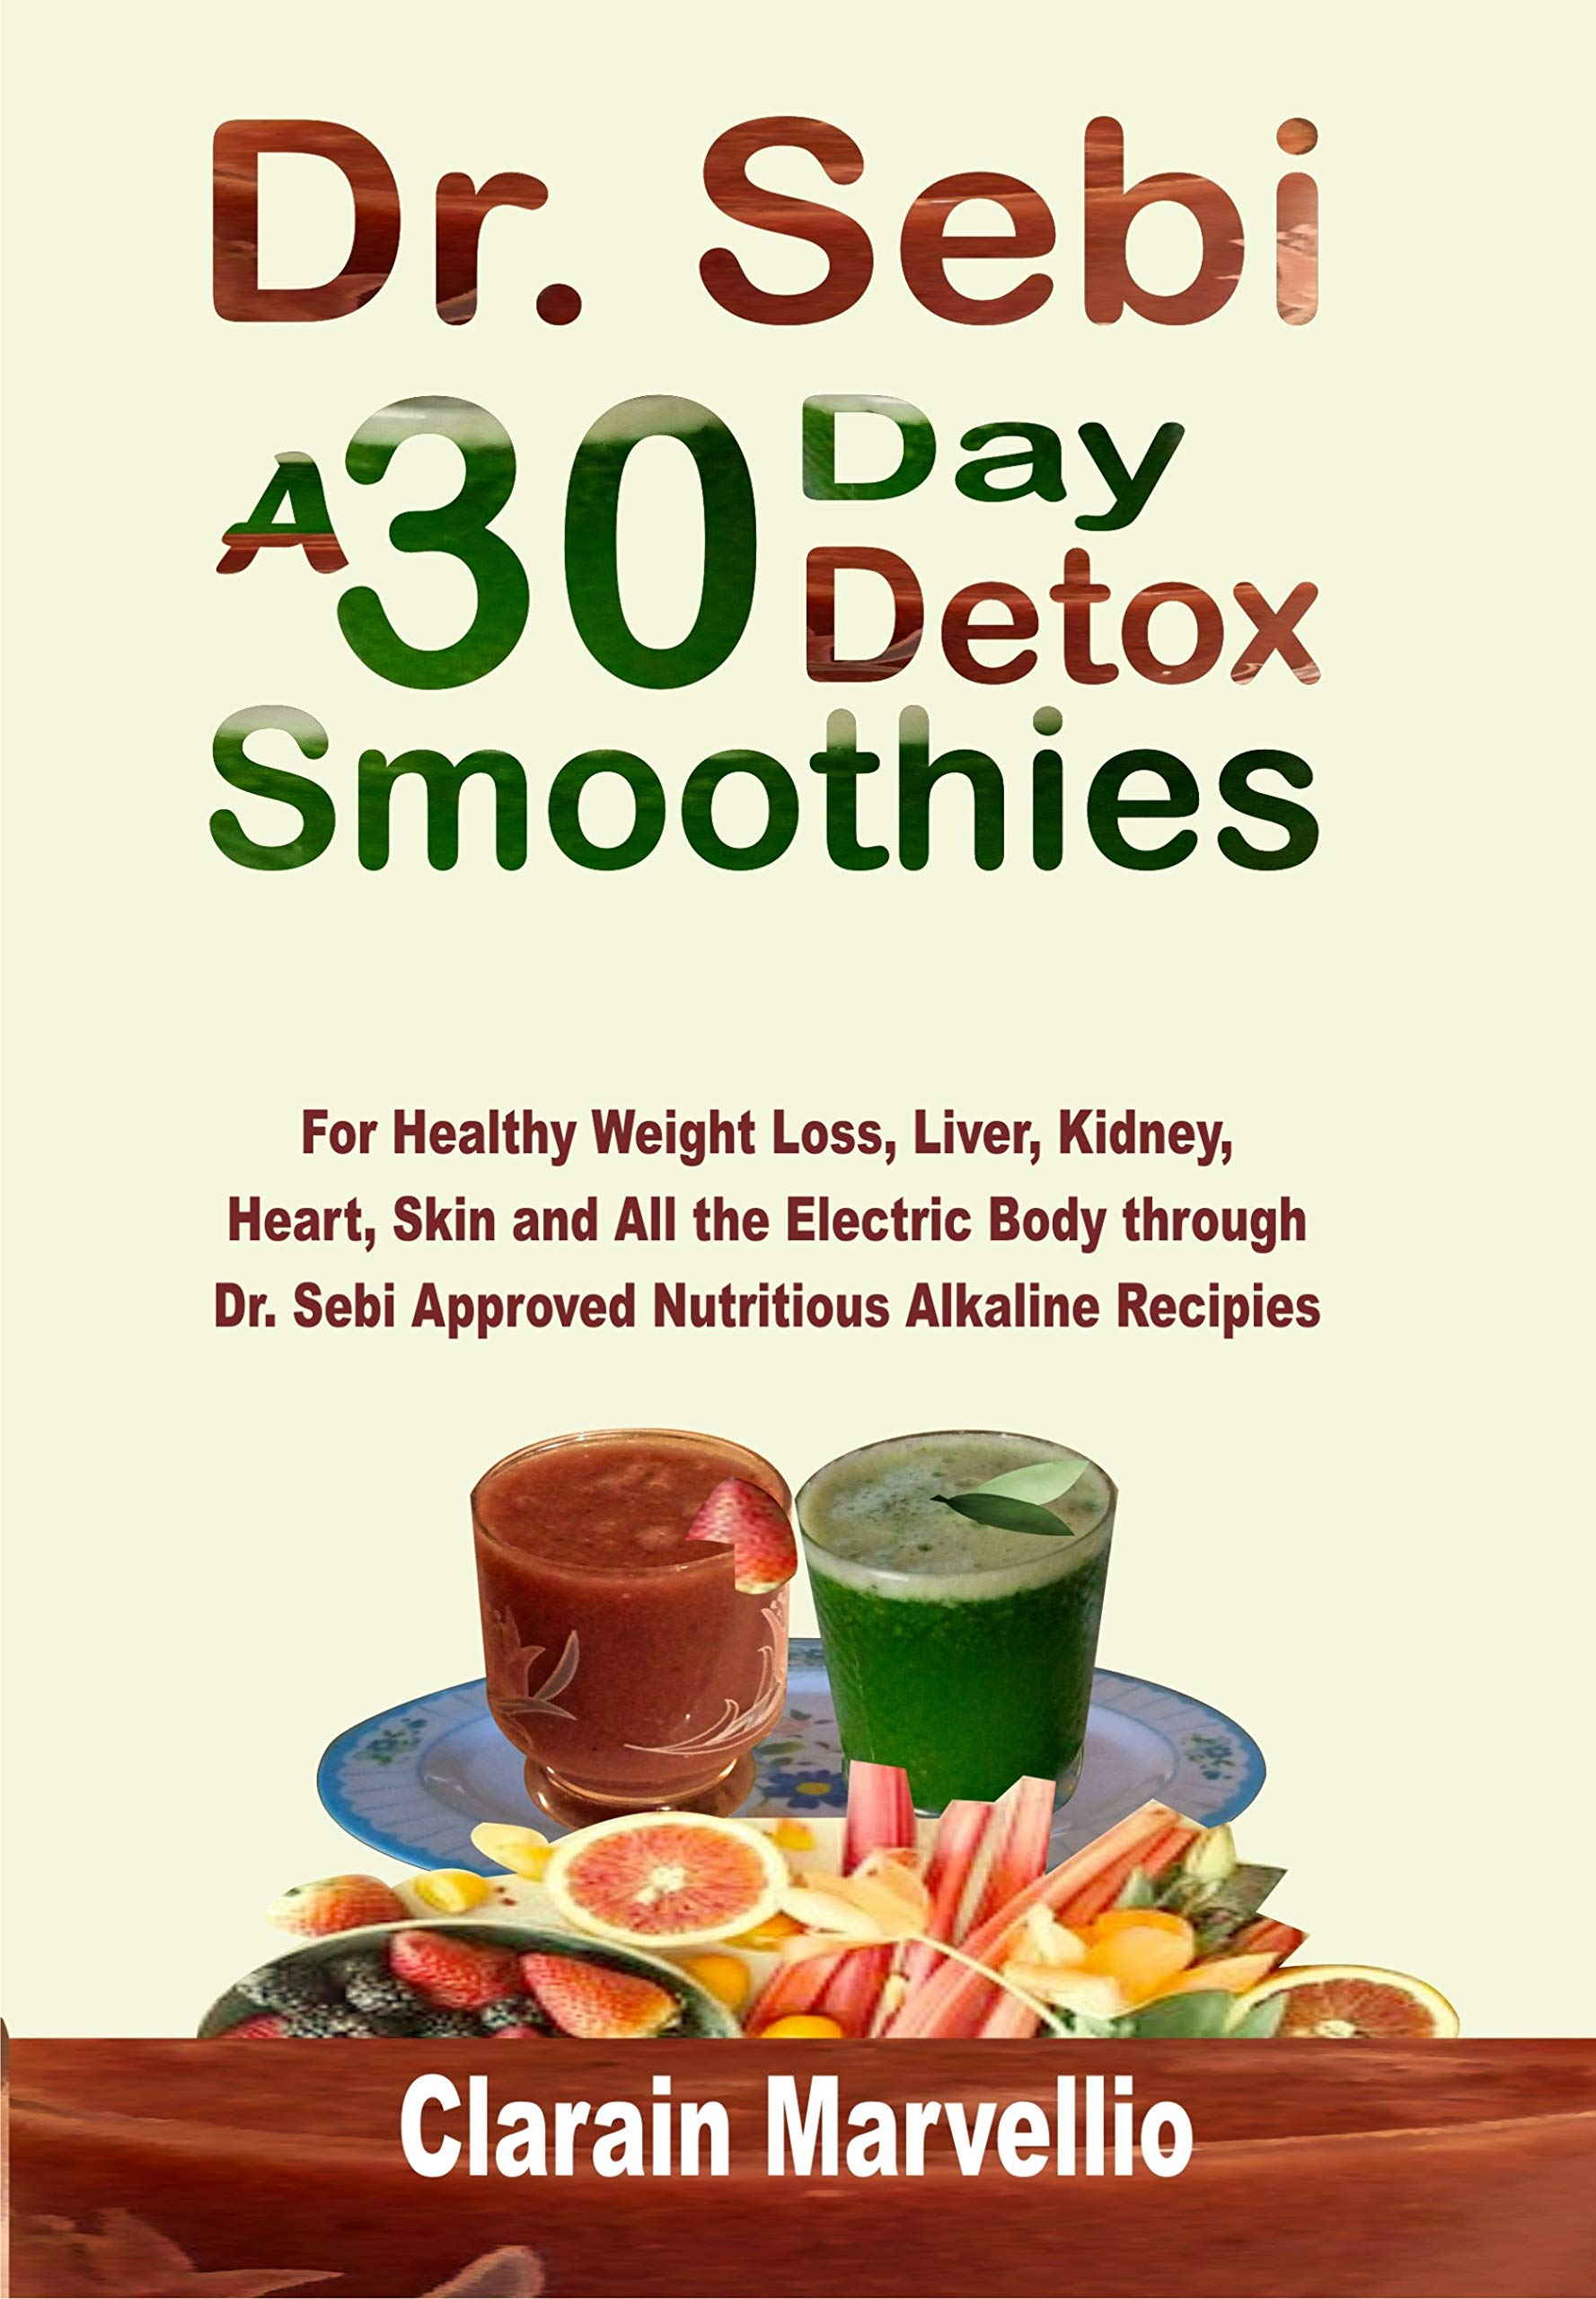 Dr. Sebi A 30 Day Detox Smoothies: For Healthy Weight Loss, Liver, Kidney, Heart, Skin and Electric Body through Dr. Sebi Approved Nutritious Alkaline Recipes